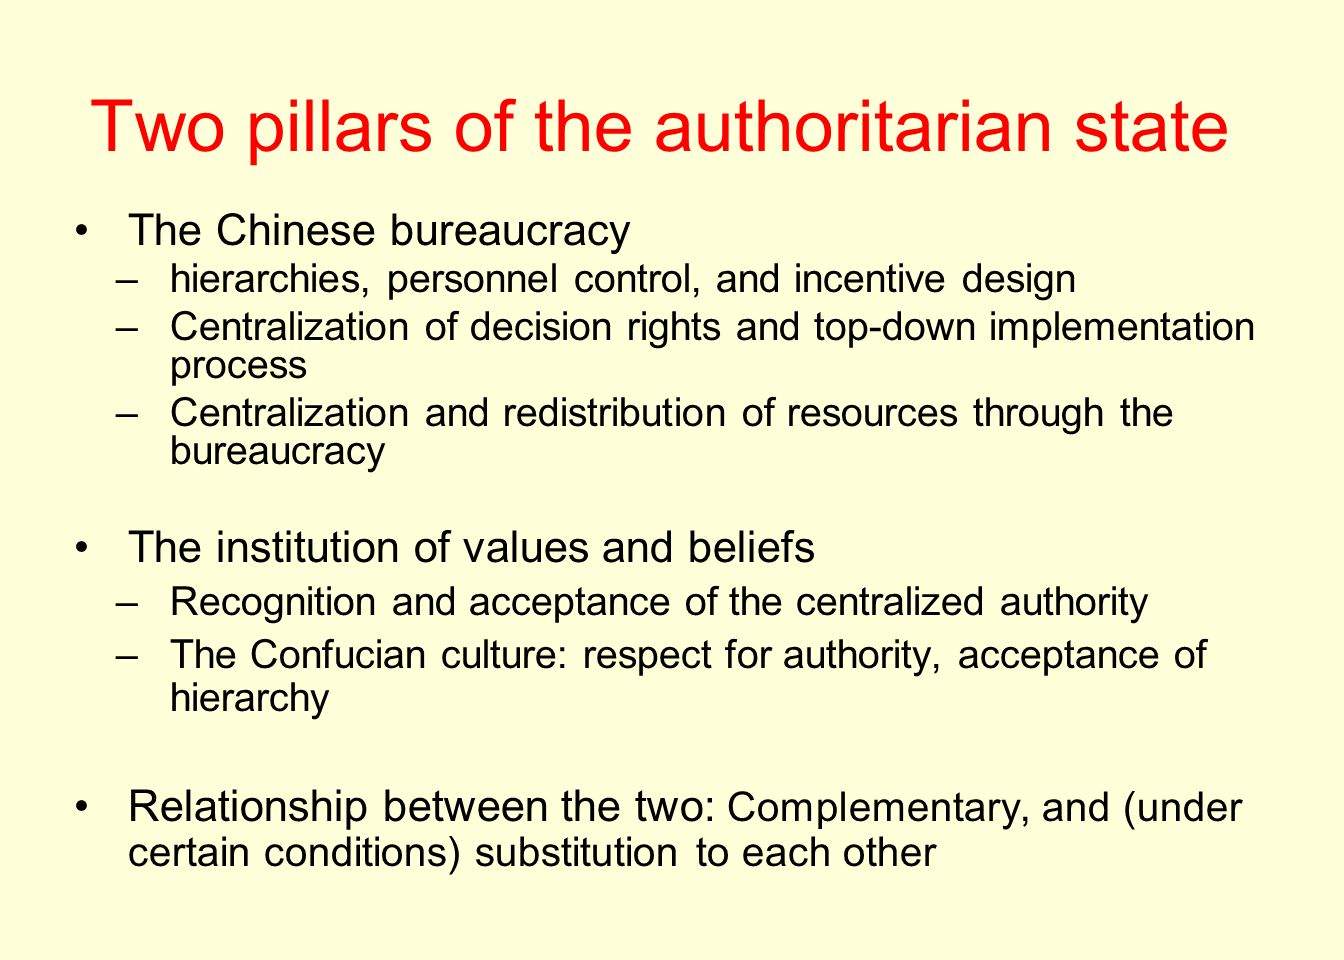 Two pillars of the authoritarian state